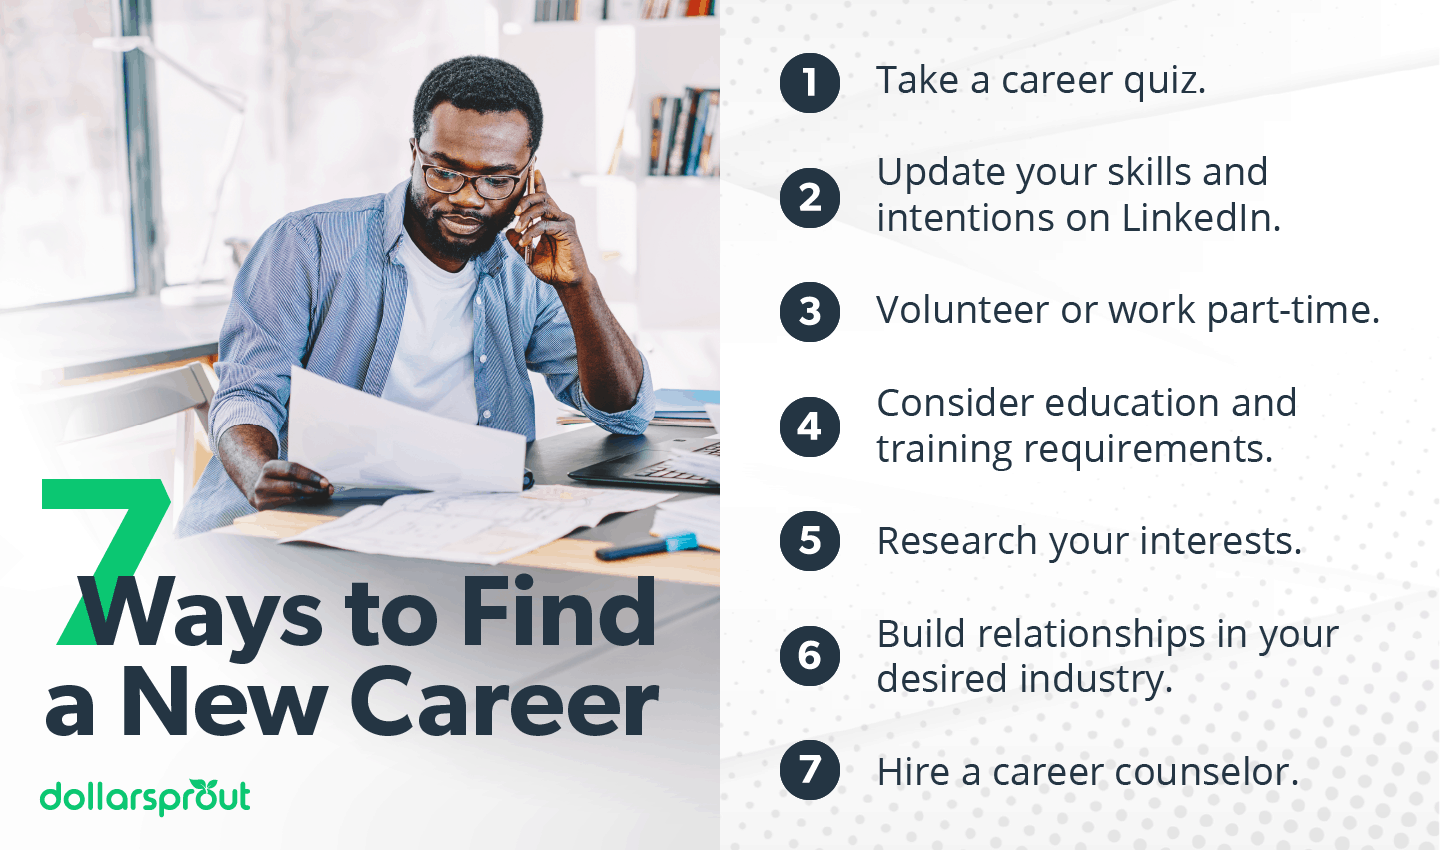 7 ways to find a new career infographic